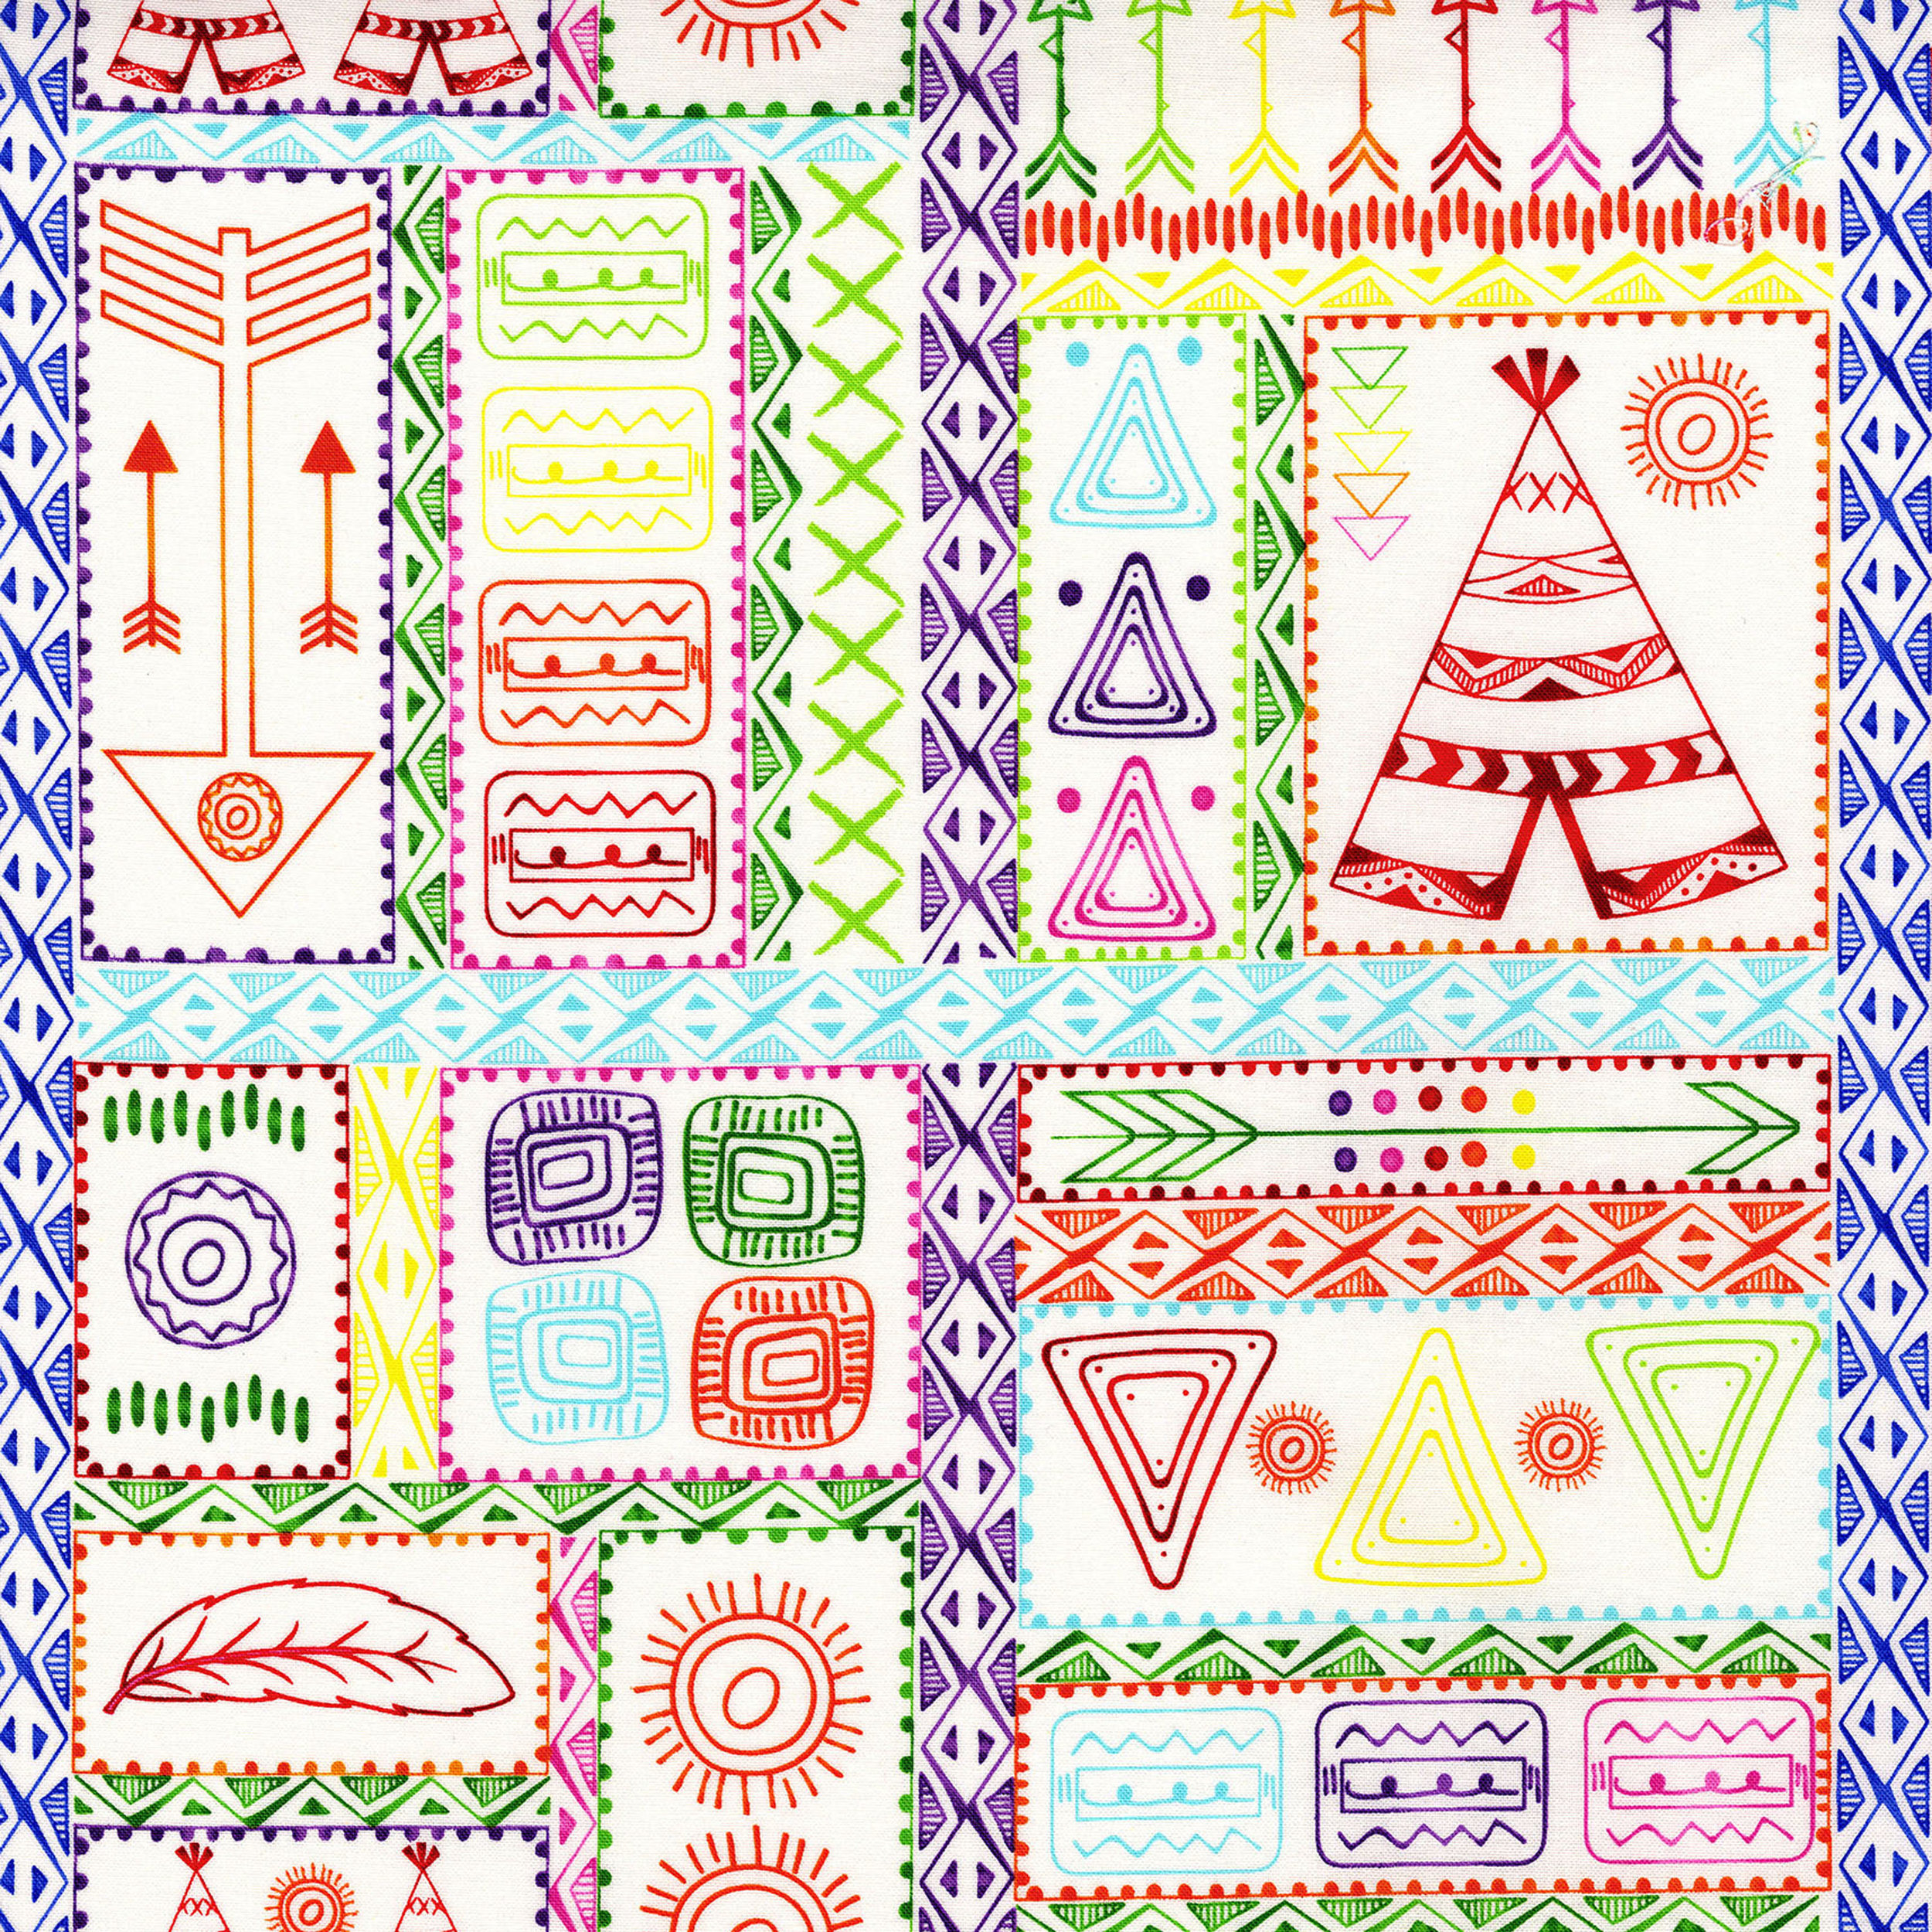 3330-003  PATCHWORK SYMBOLS-BRIGHT WHITE